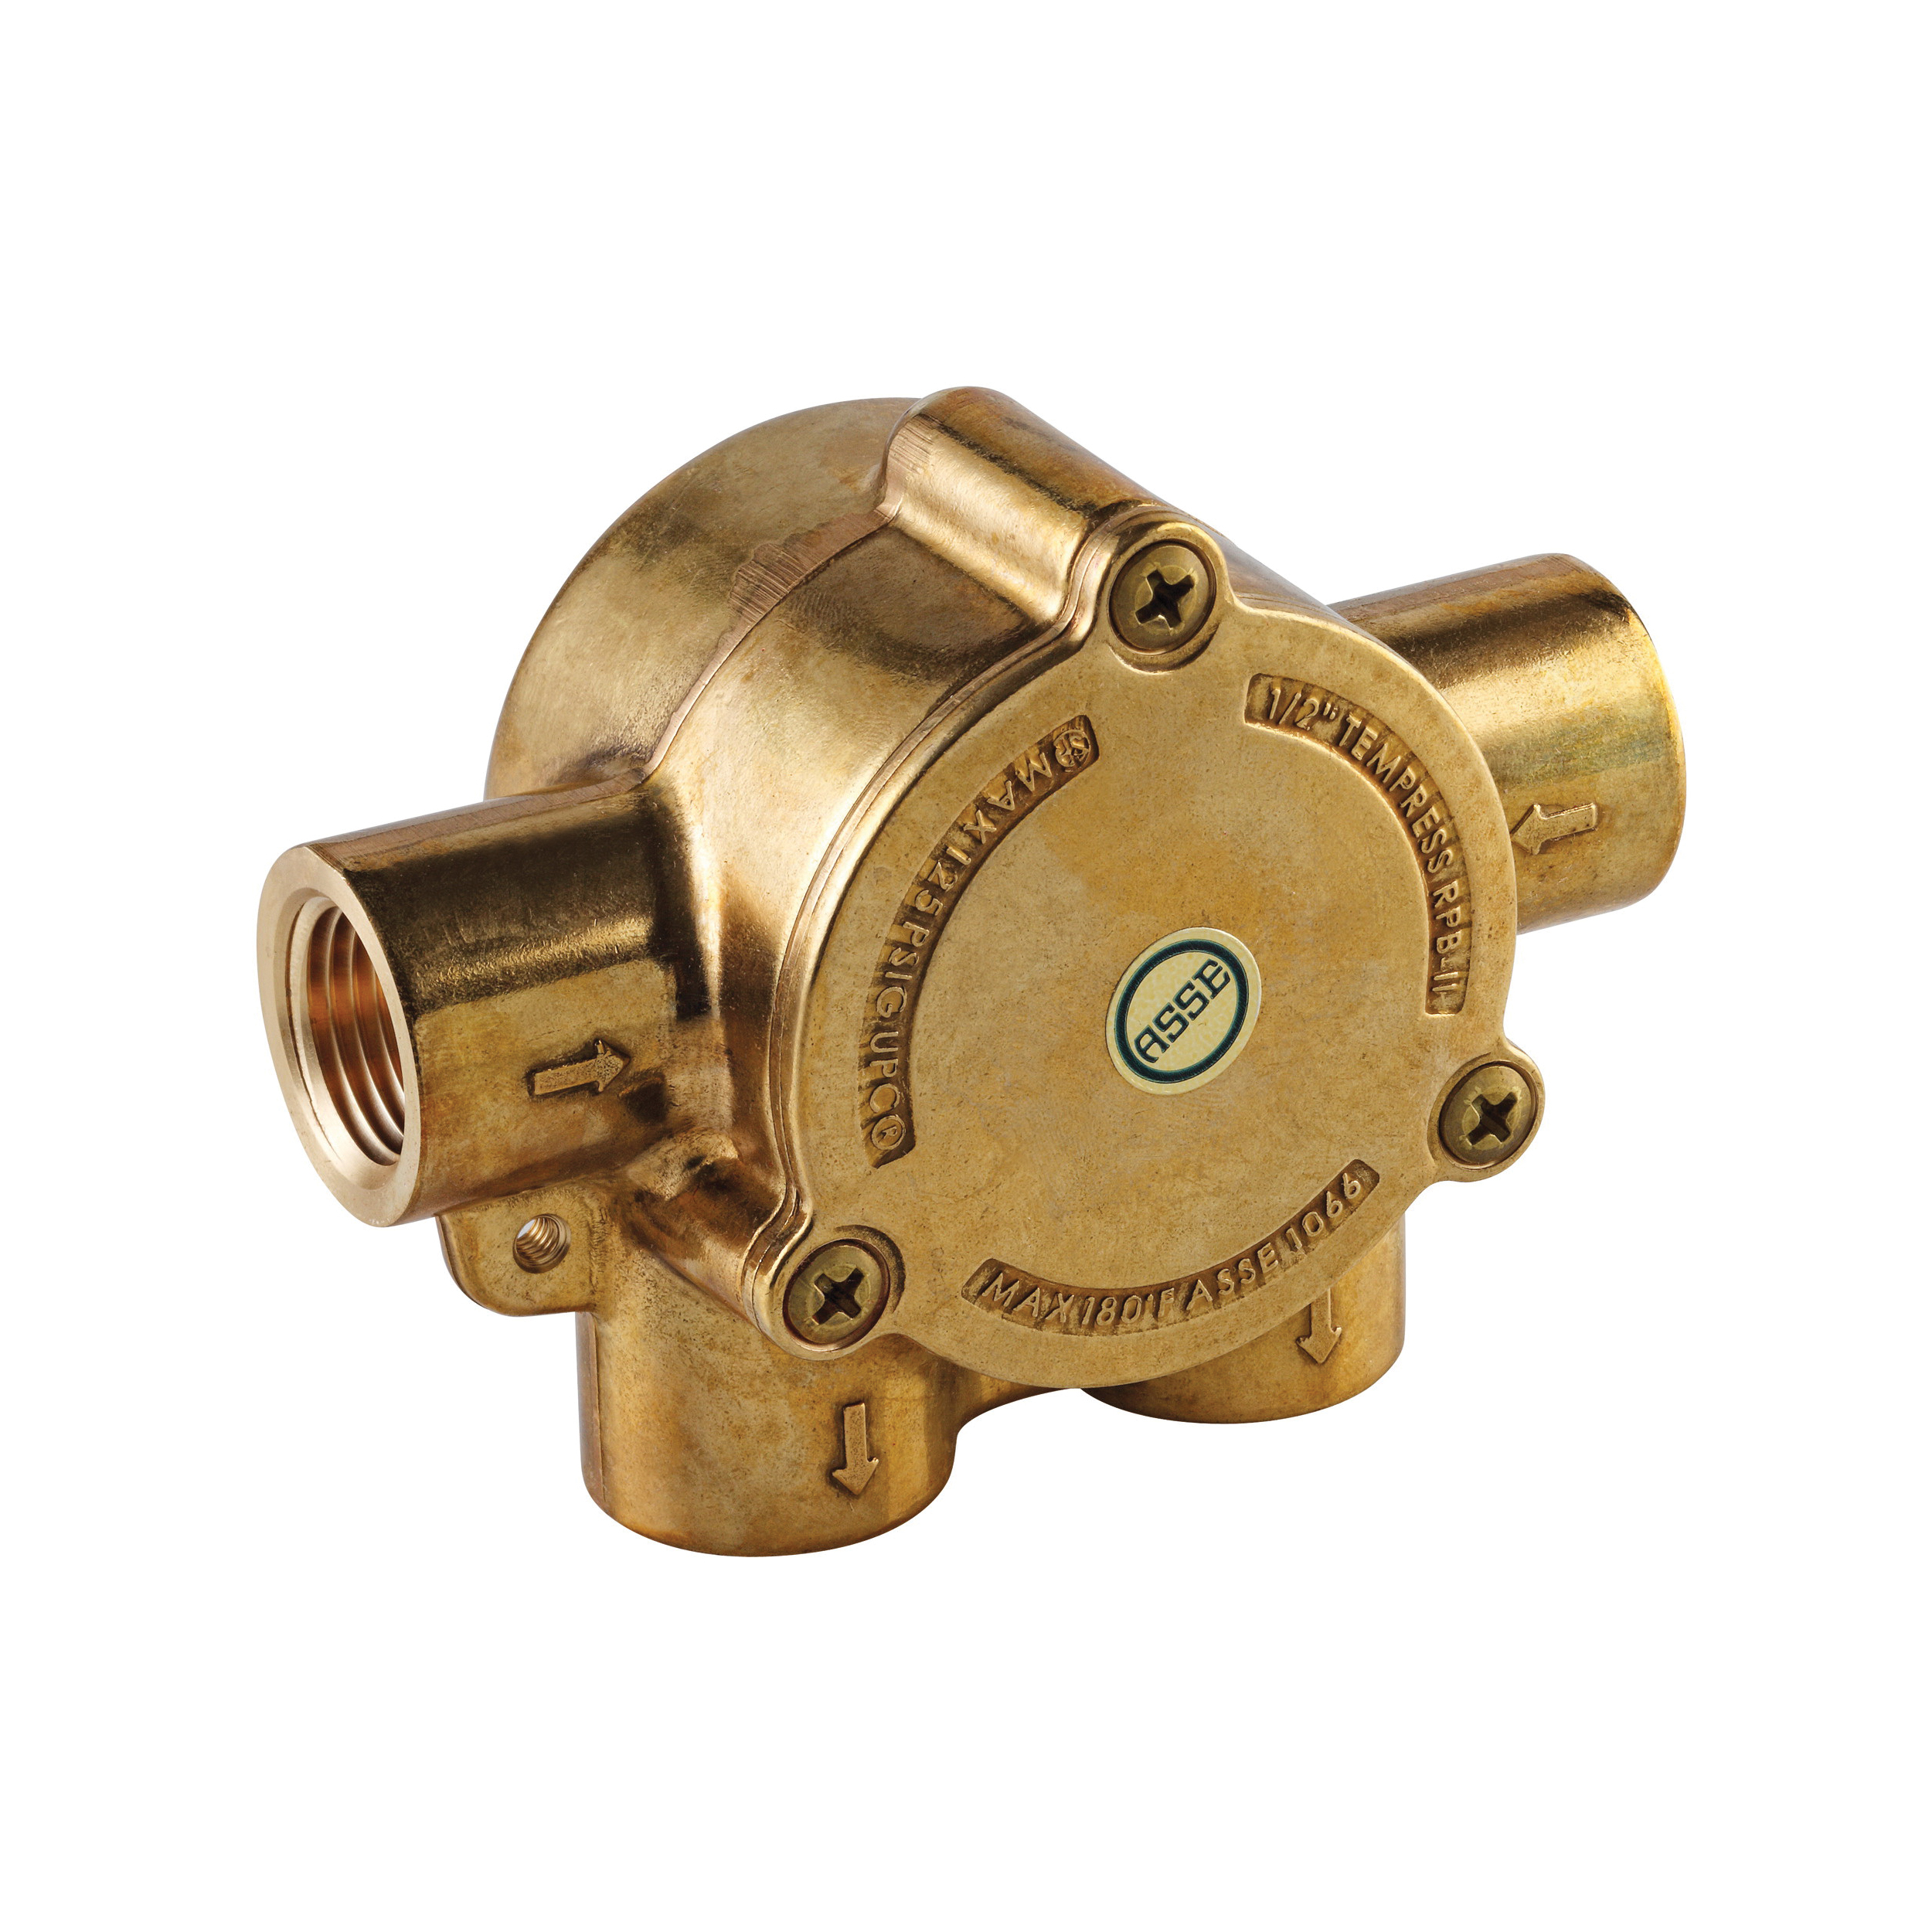 GROHE 35204000 Pressure Balancing Valve, 5.5 gpm Shower